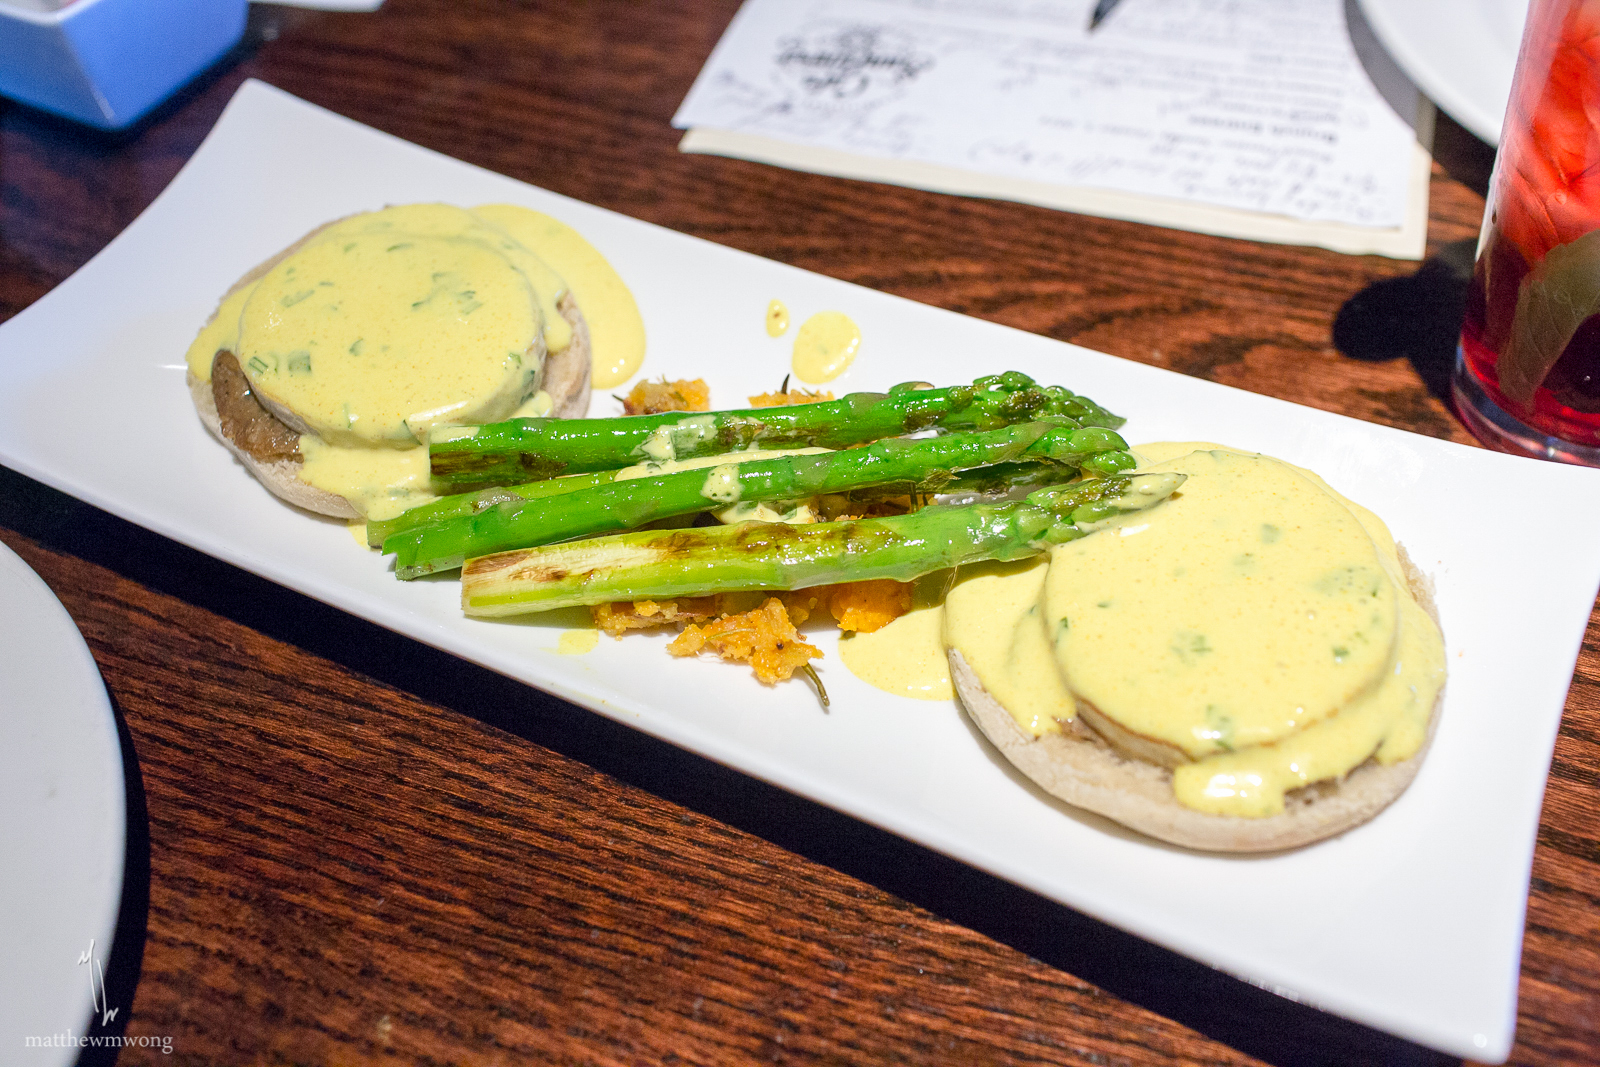 Tofu Benedict - Grilled tofu, lettuce, tomato, country-style home fries, steamed asparagus, house made vegan hollandaise